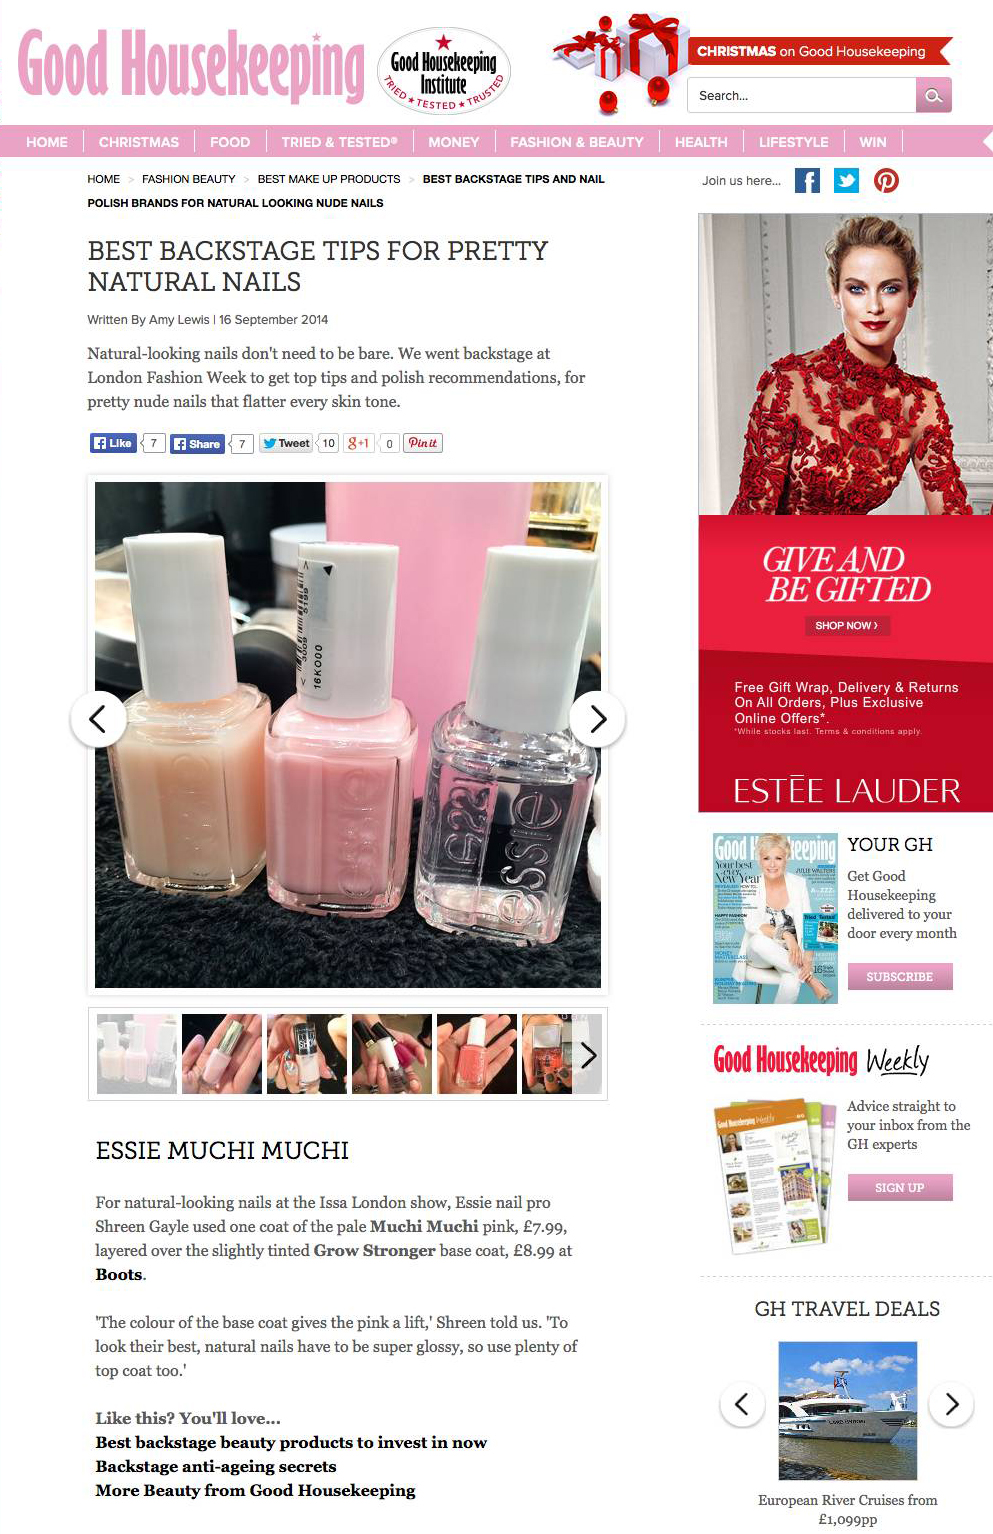 Top tips for natural nails_backstage at London Fashion Week